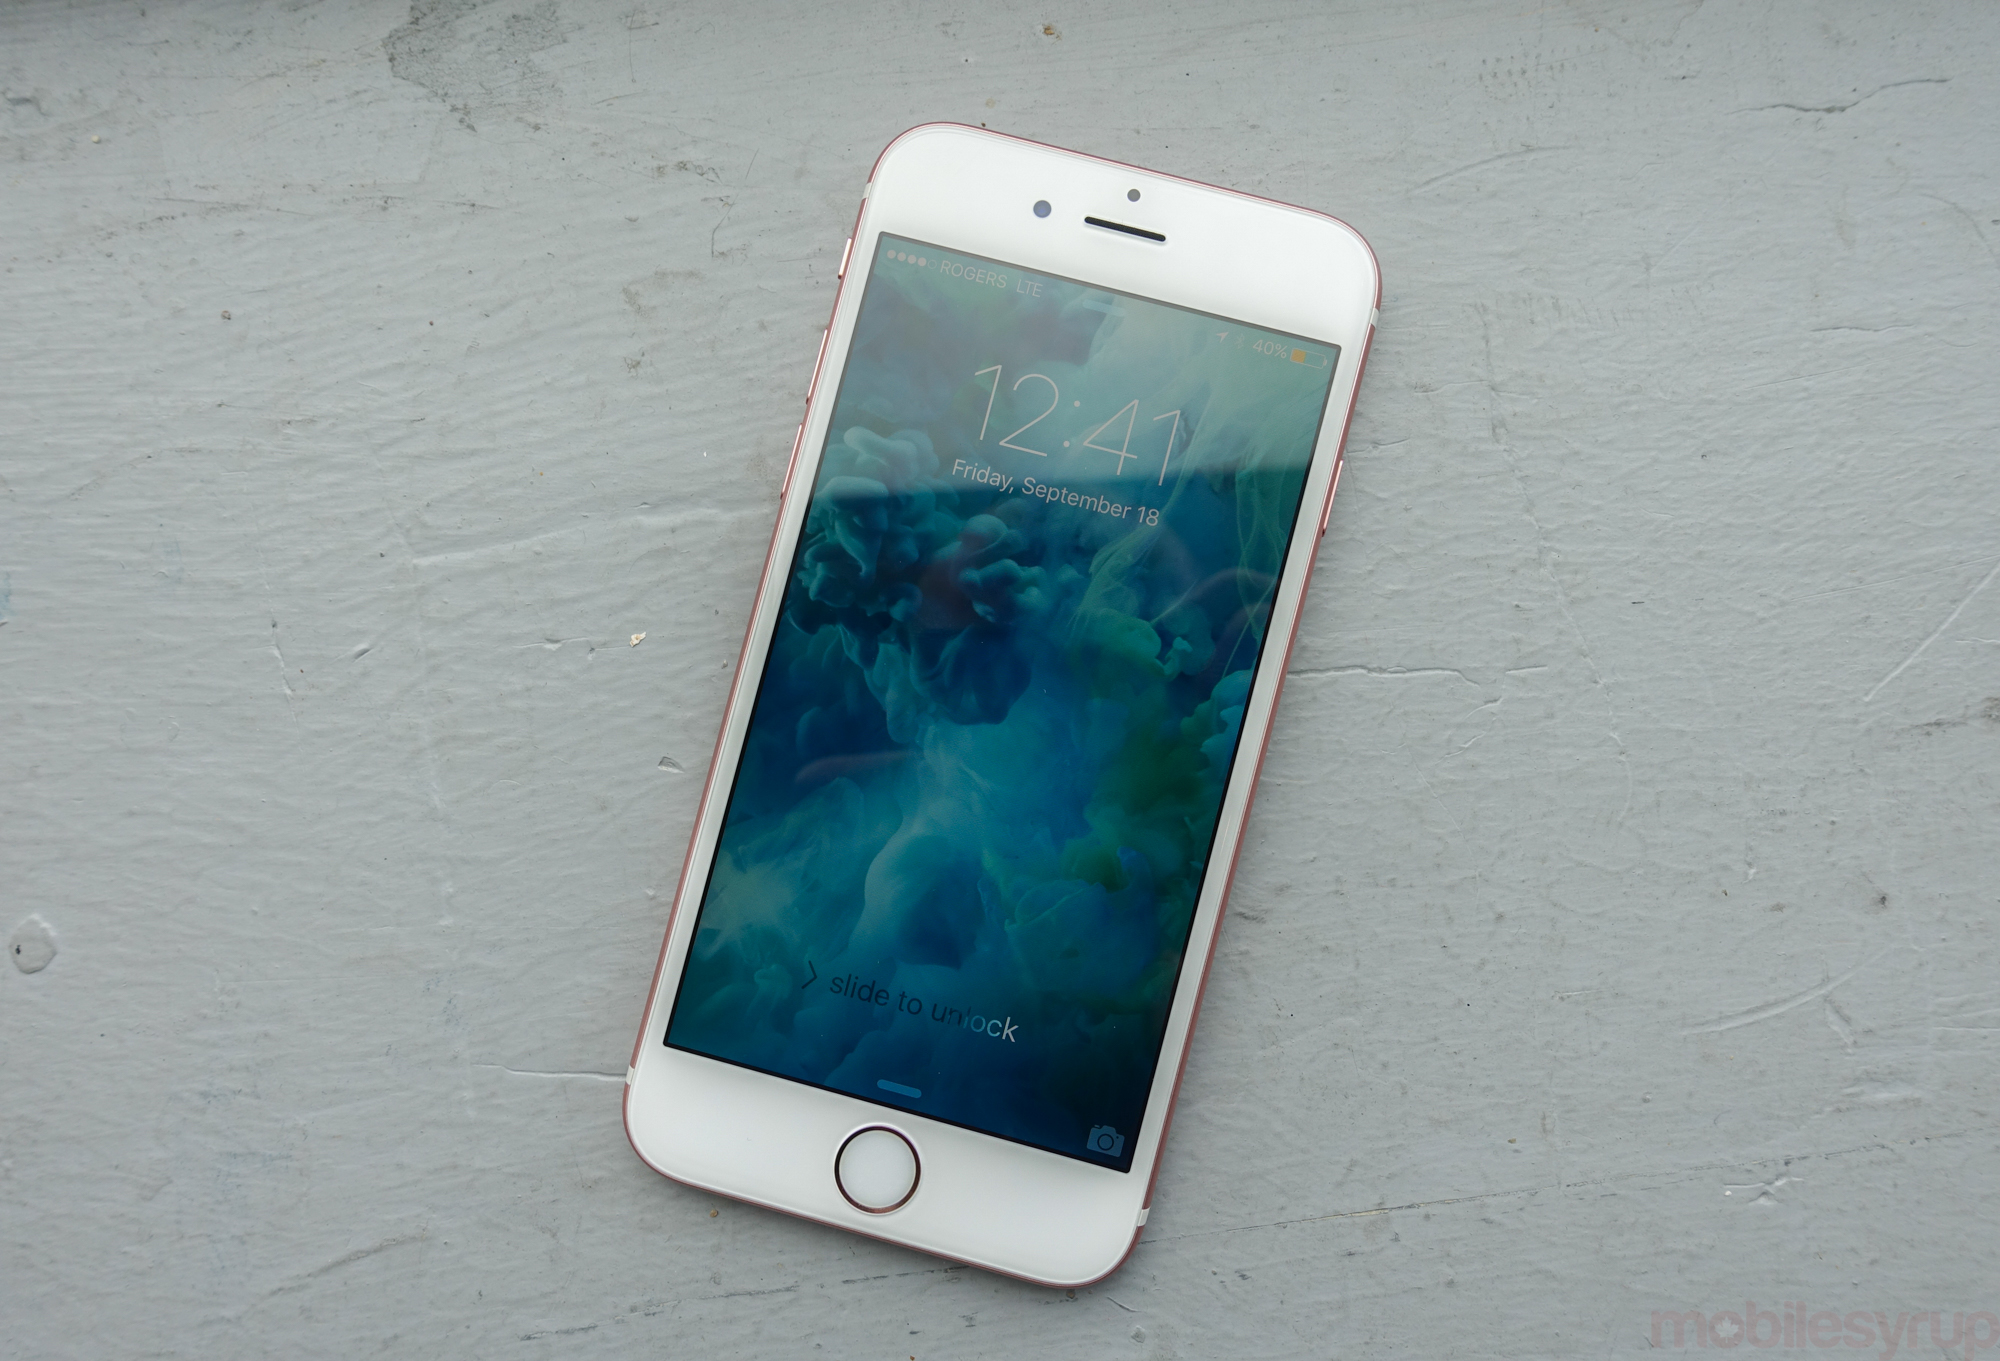 iphone6sreview-01292